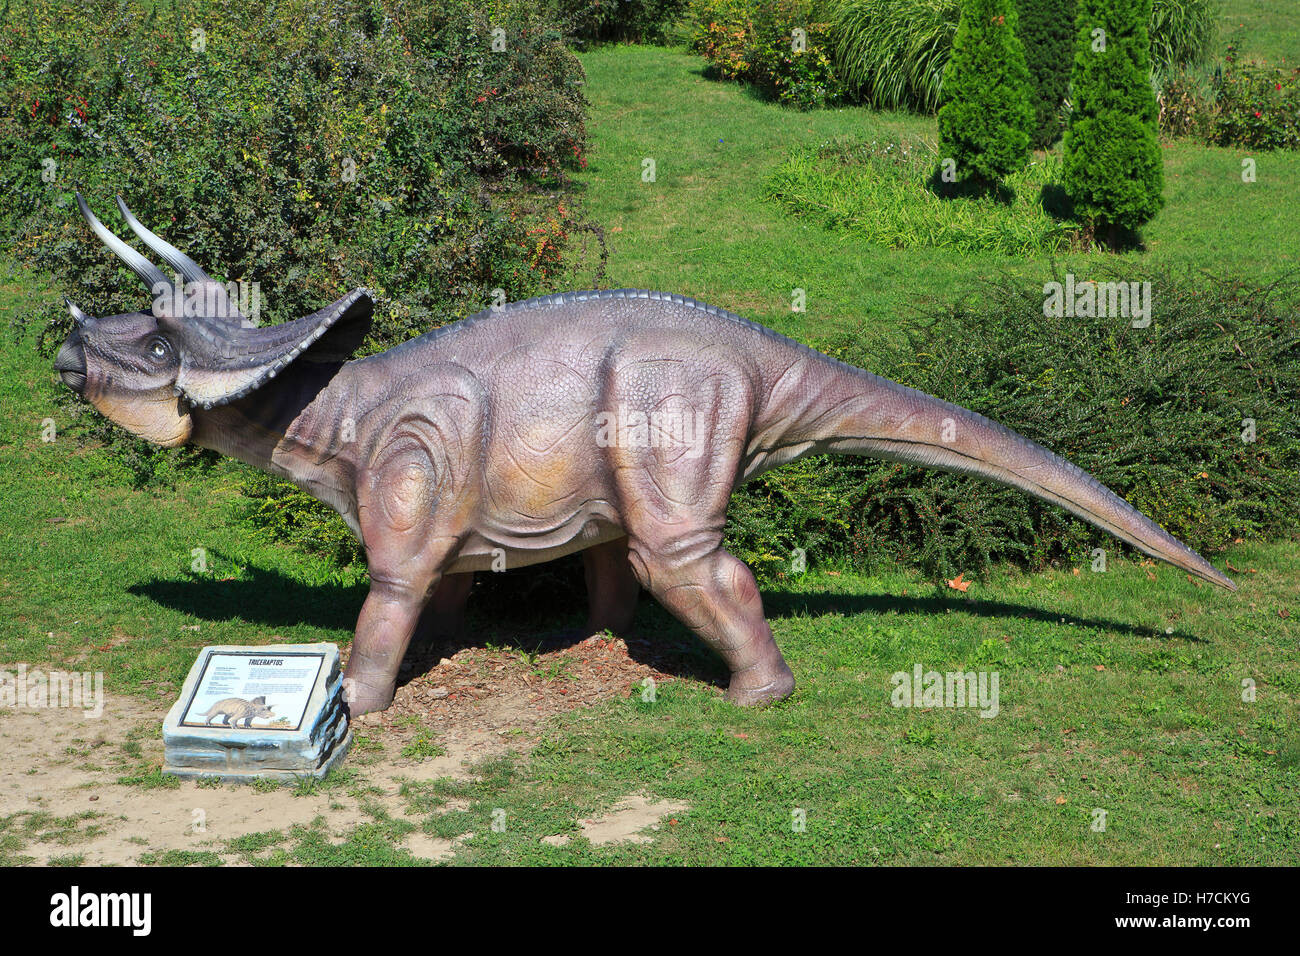 A Triceratops (Late Cretaceous) at the Jura Avantura exhibition in the Kalemegdan Fortress in Belgrade, Serbia - Stock Image